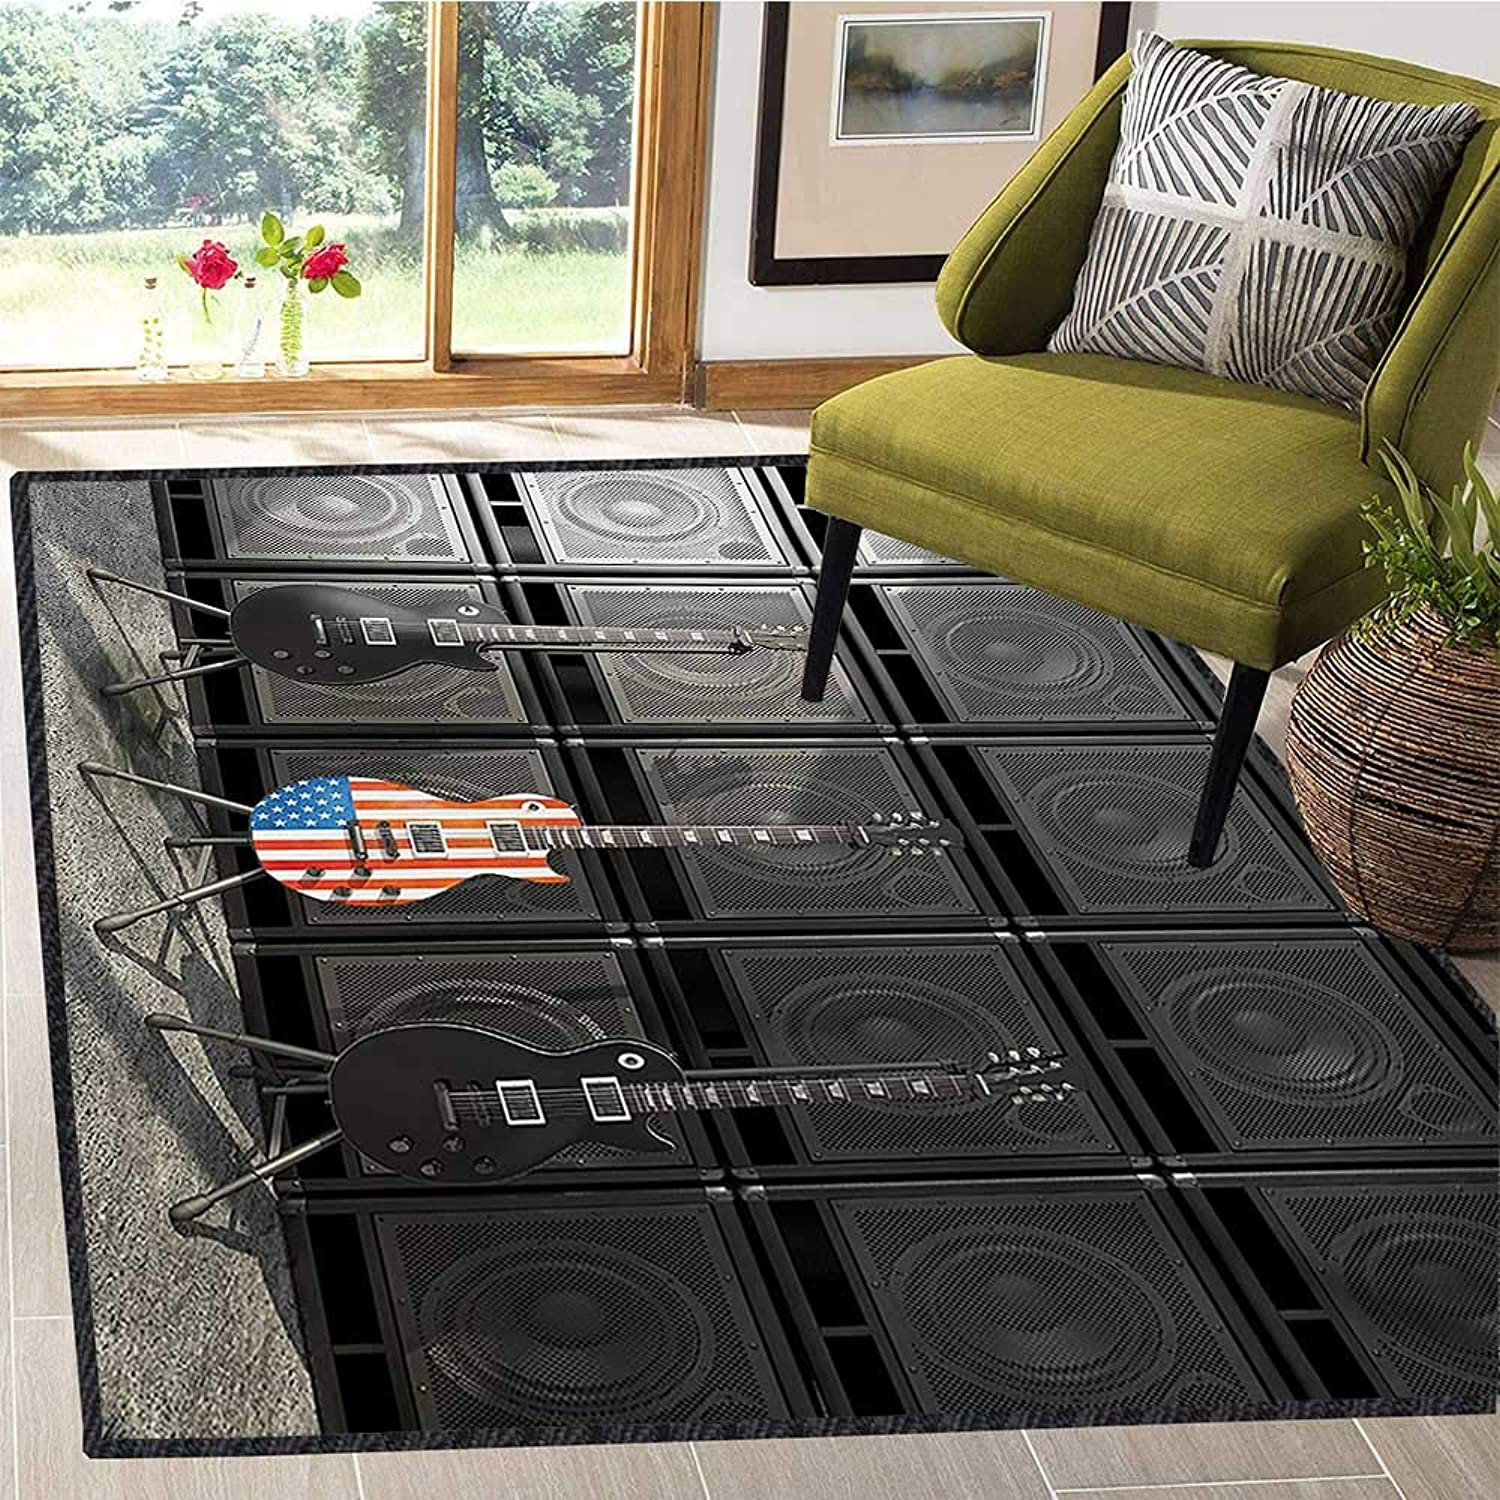 American Flag, Room Home Bedroom Carpet Floor Mat, Black and Us Bass Guitar Electronic Rock Music Theme Digital Graphic Work, Door Mats for Inside 4x5 Ft Multicolor